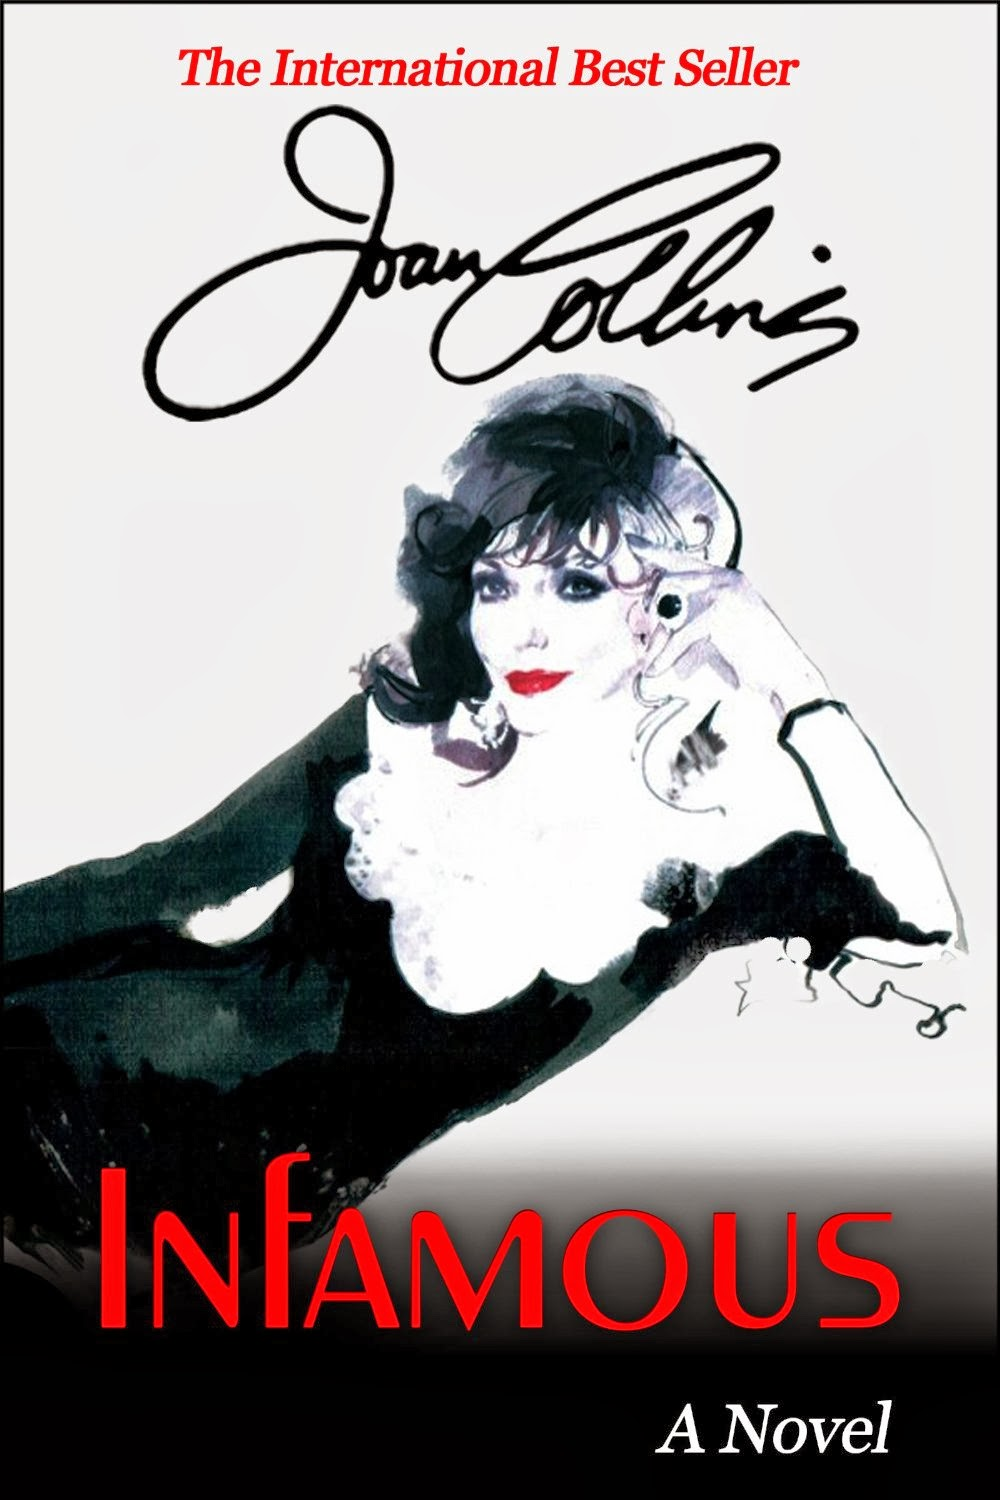 INFAMOUS! NOW ON KINDLE!